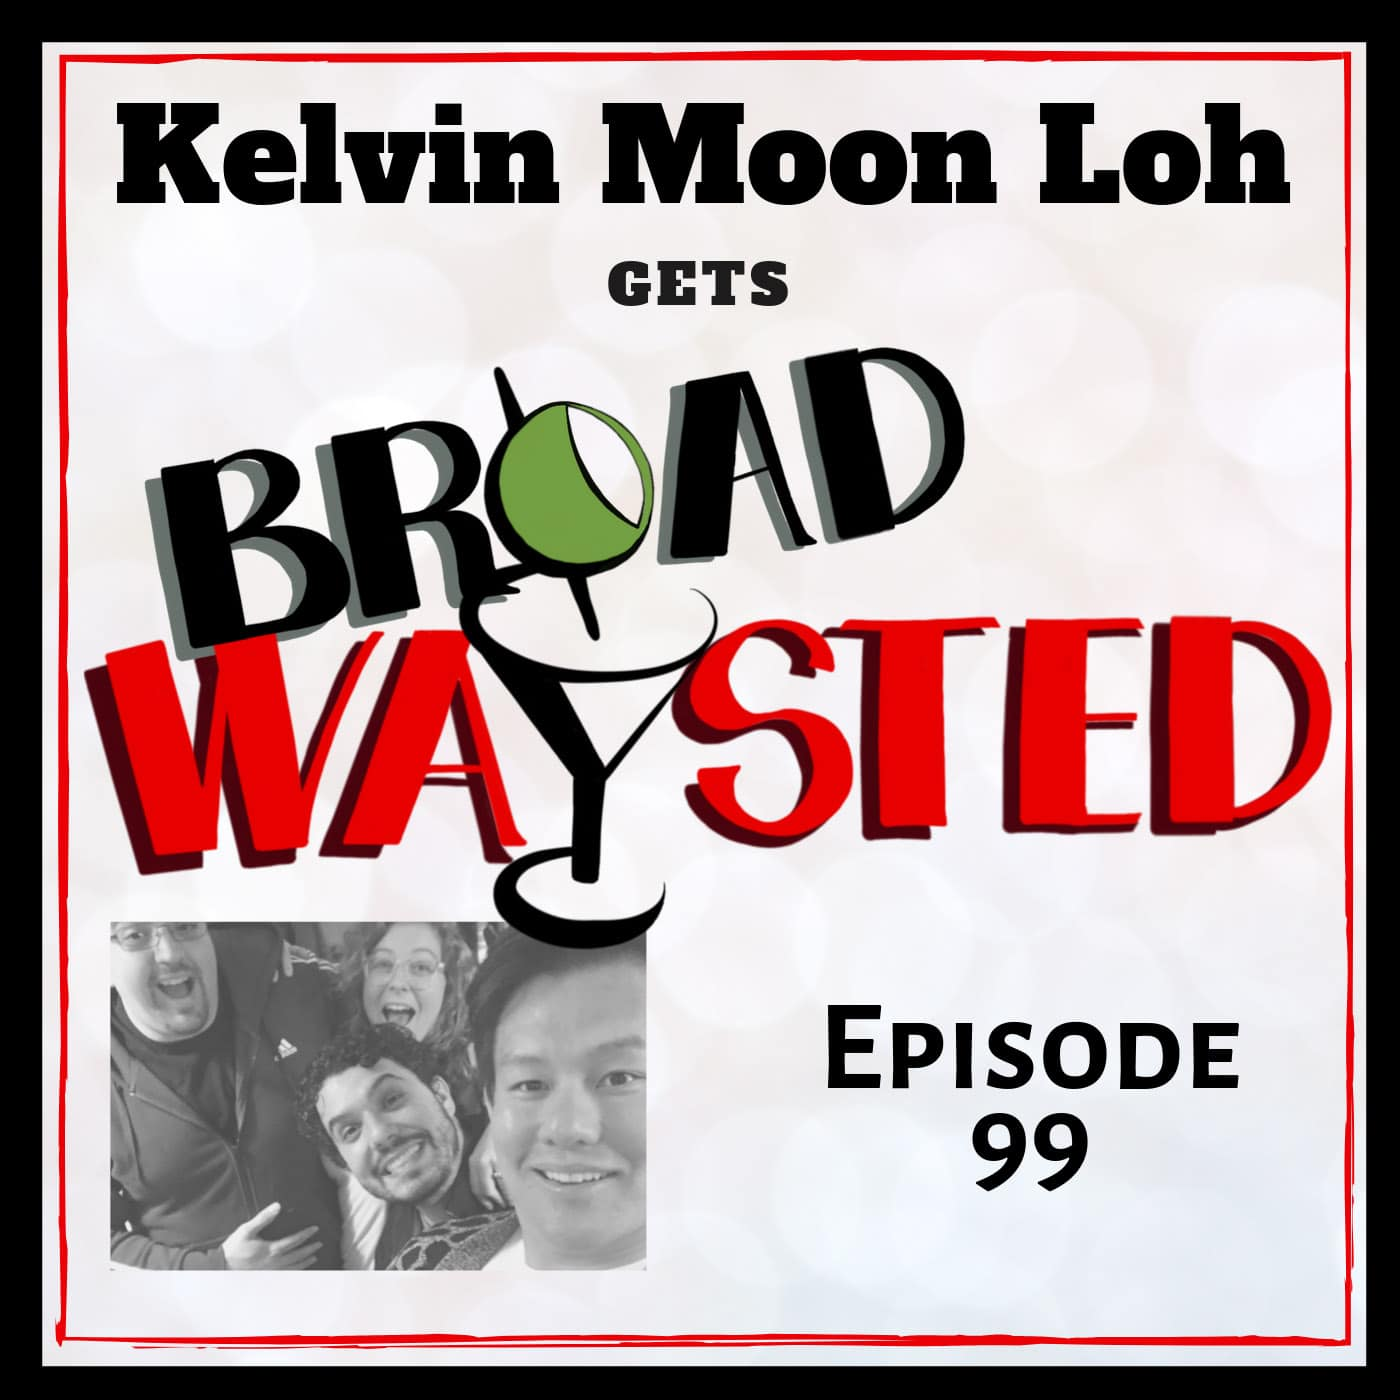 Broadwaysted Ep 99 Kelvin Moon Loh